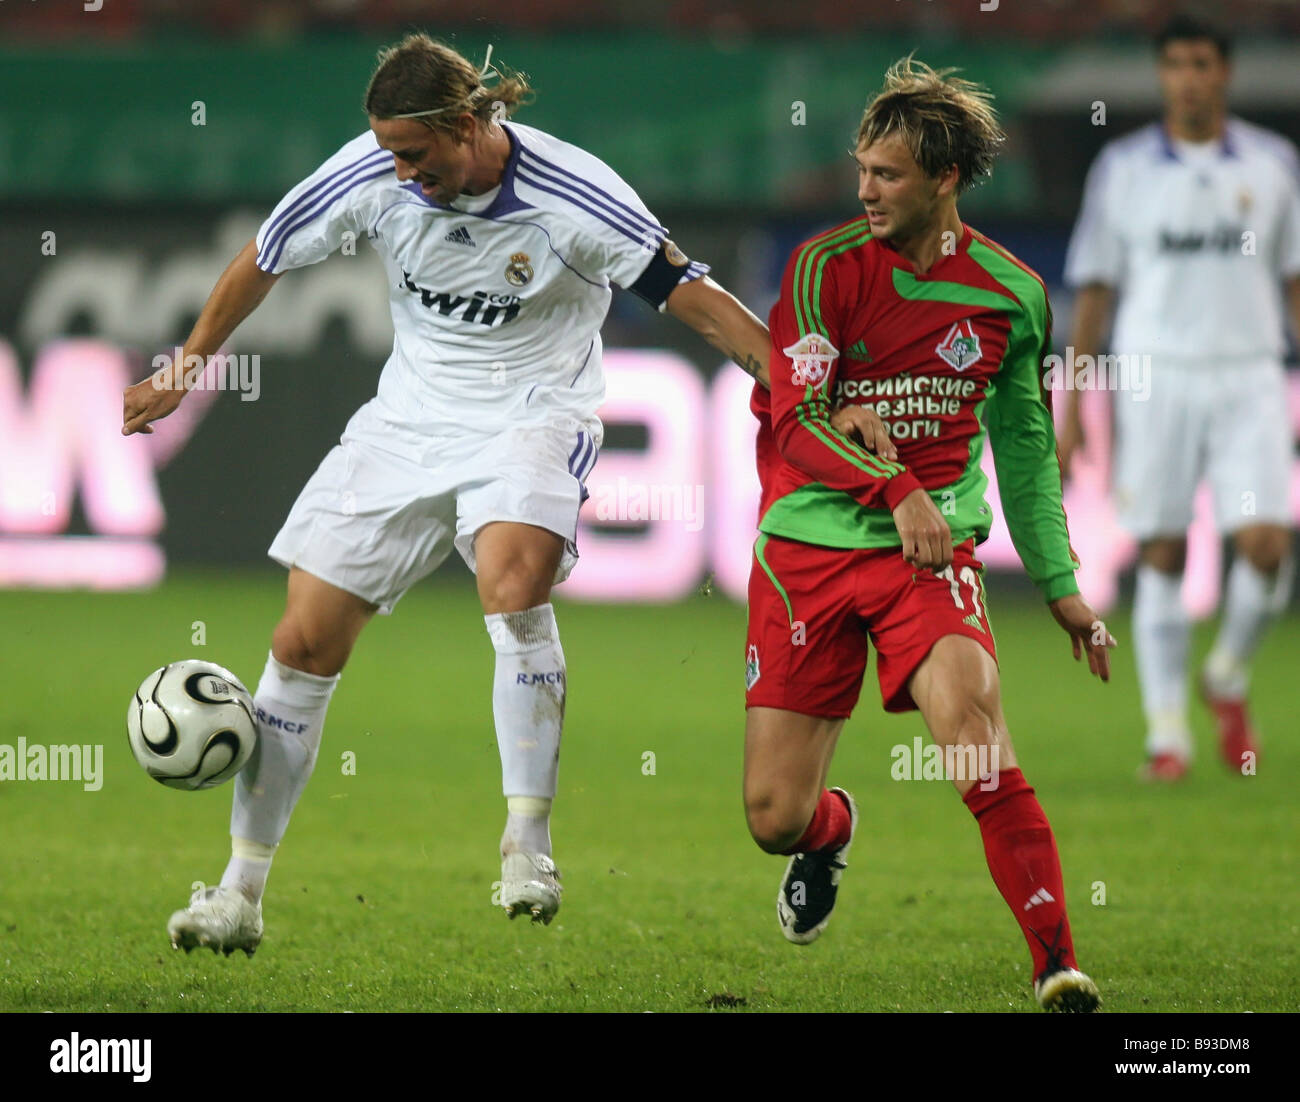 Real Madrid vice captain Jose Maria Gutierrez Hernandez left and Dmitry Sychyov Lokomotiv forward during a match - Stock Image